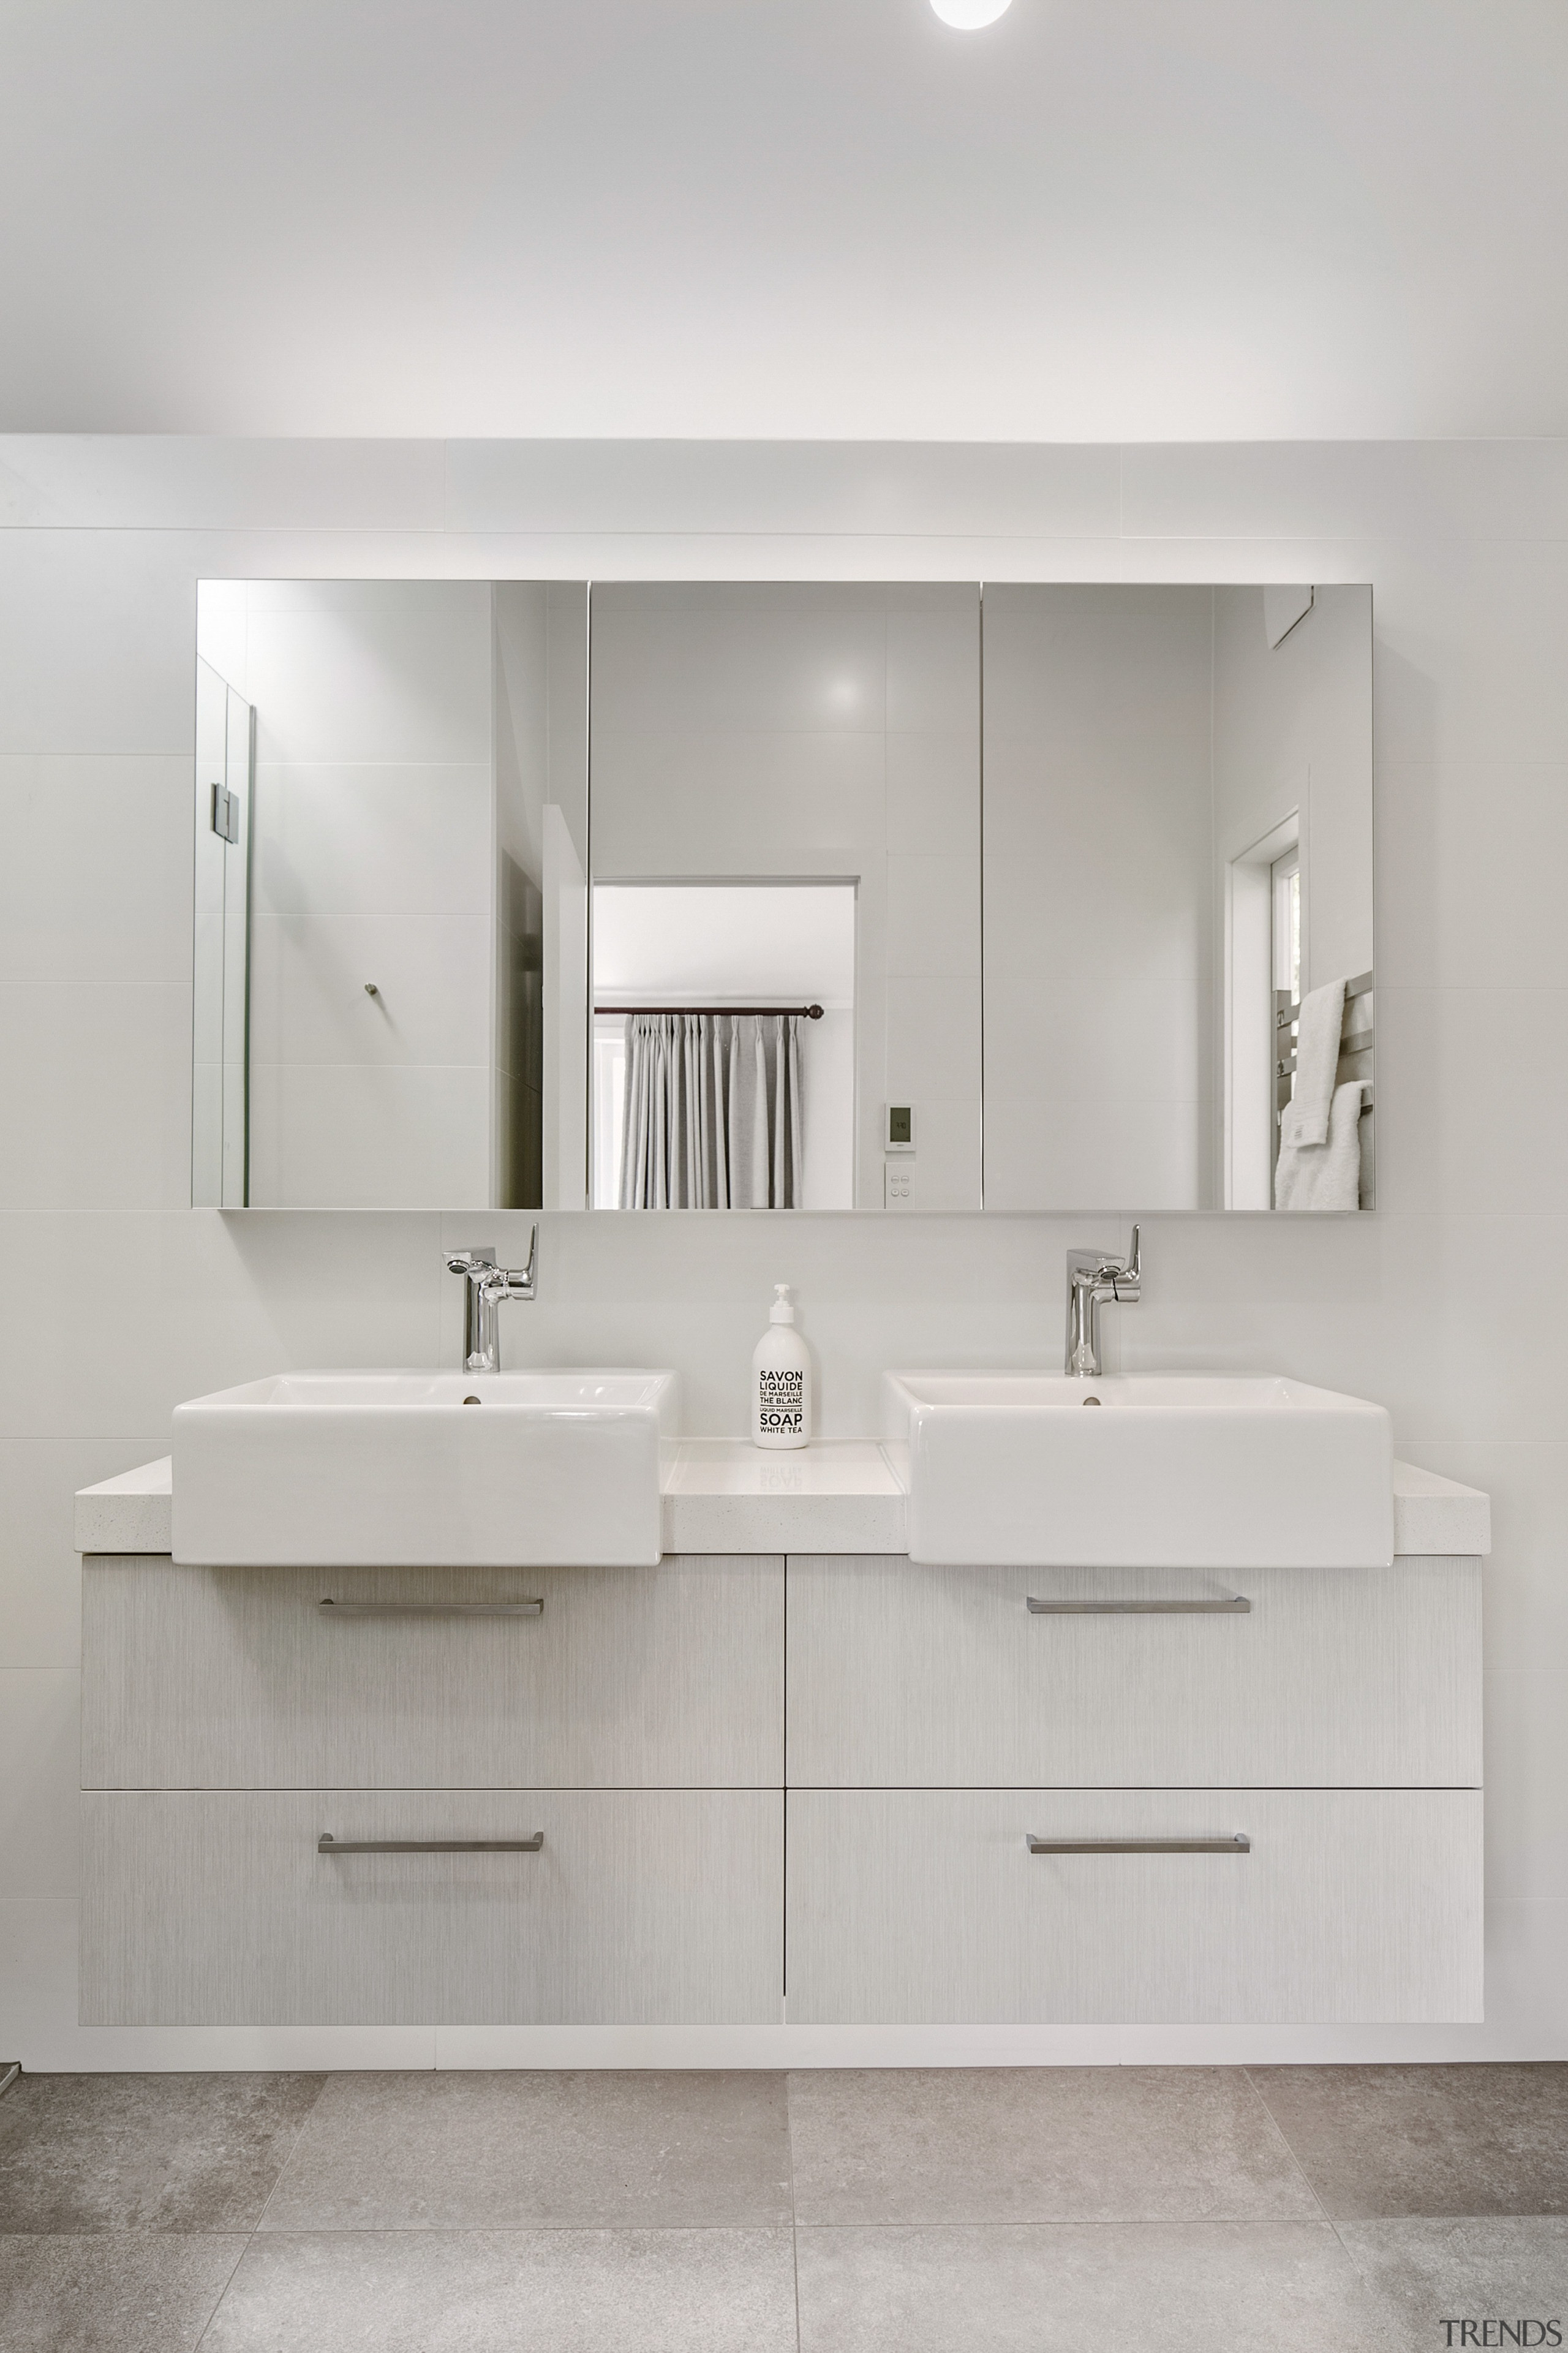 This double bathroom vanity displays the design appeal